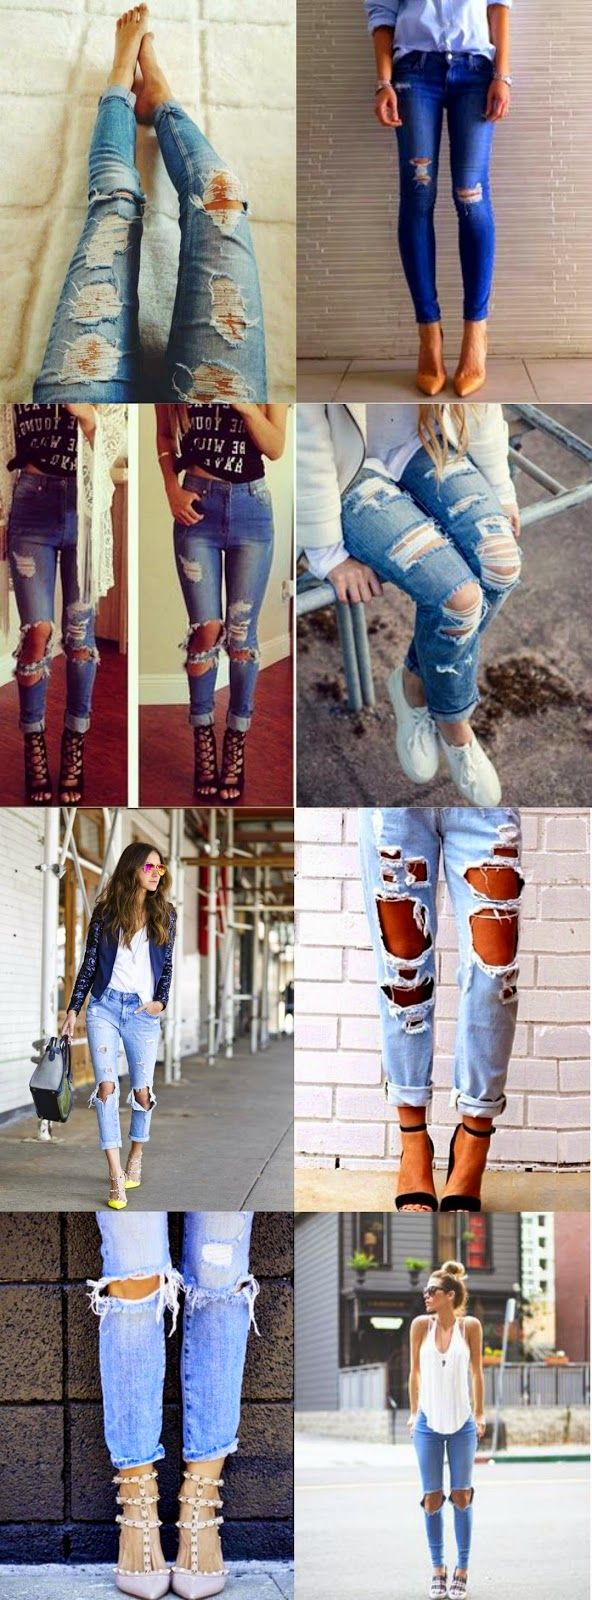 lowbudget-lowcost: DIY: ripped jeans, 3 MISTAKES TO AVOID